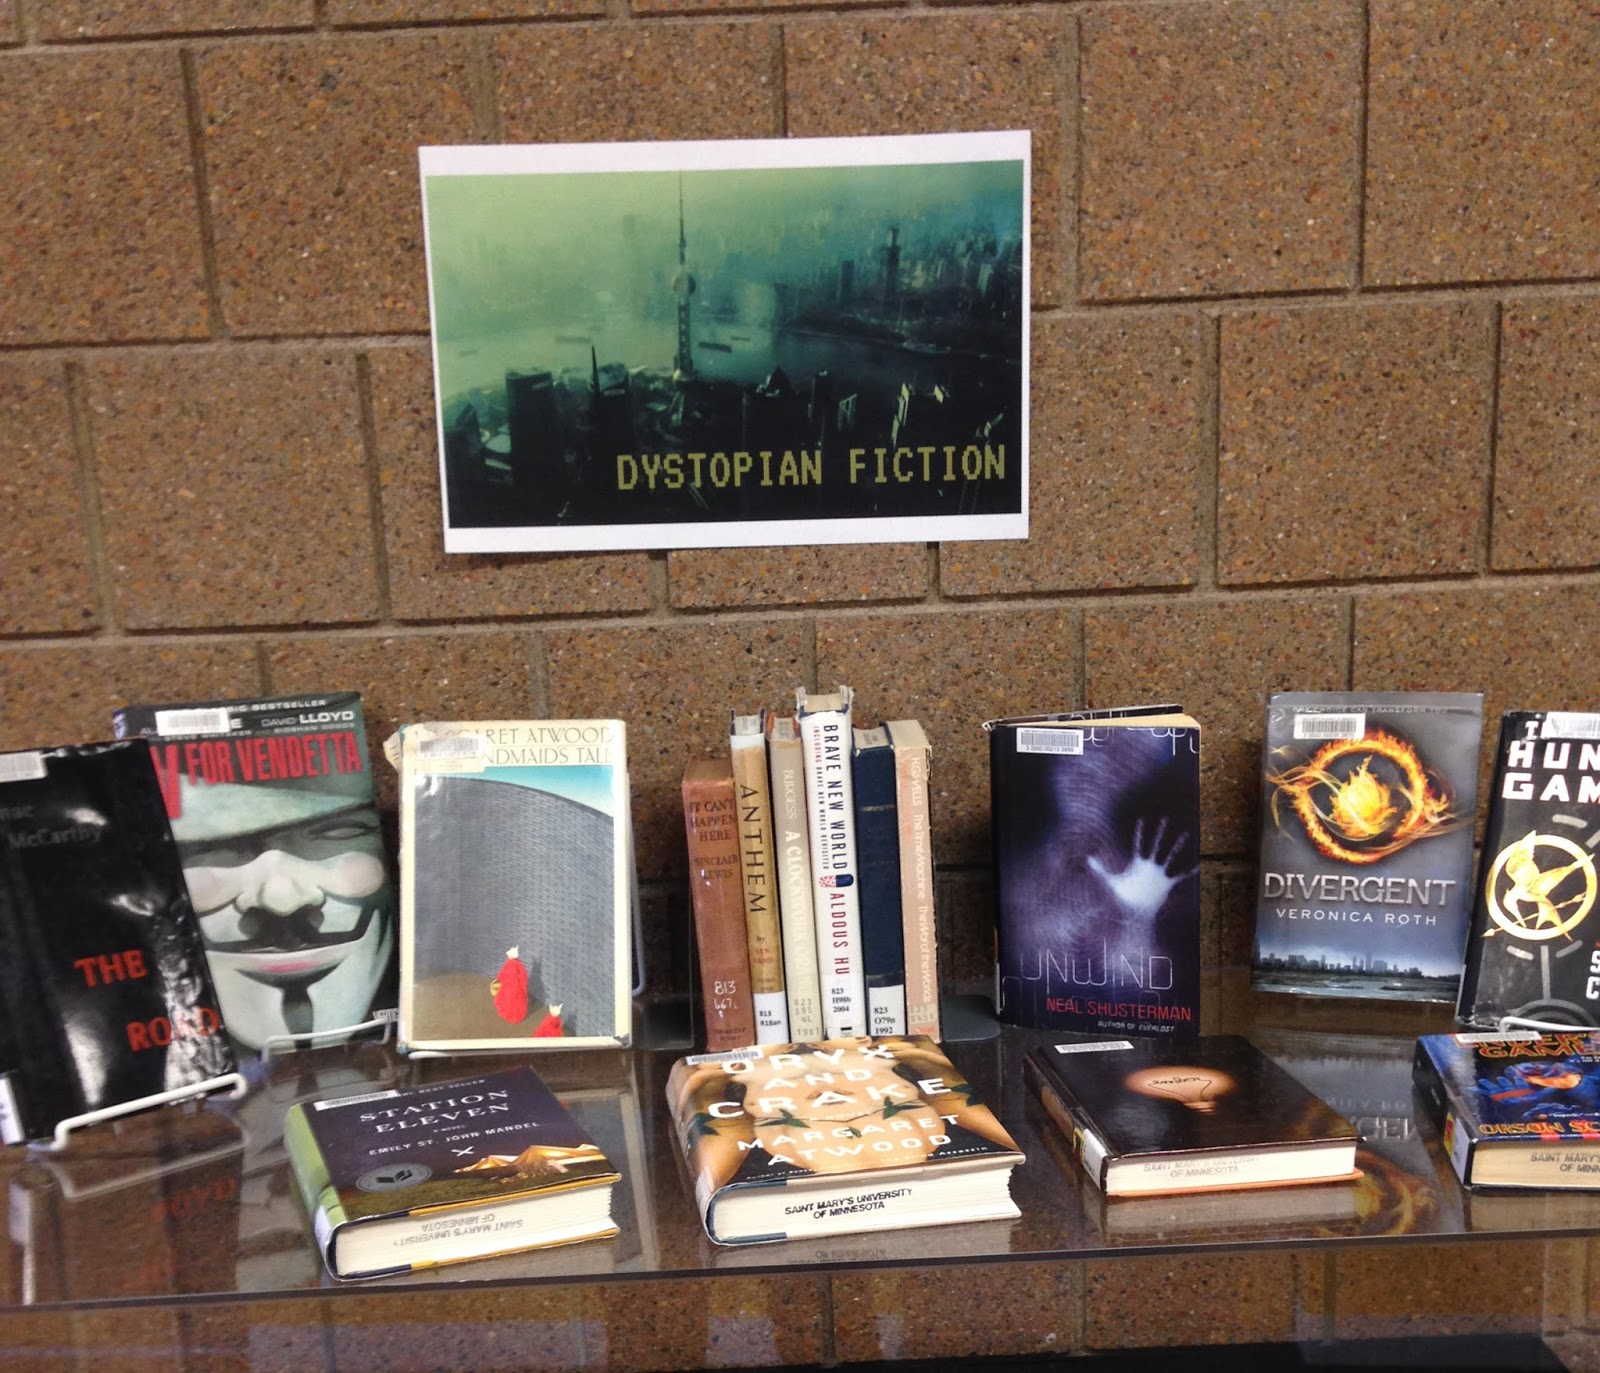 dystopian literature They don't just appear in the sci-fi section, either — dystopian fiction is firmly ensconced in book-club-ready literary circles, as well.